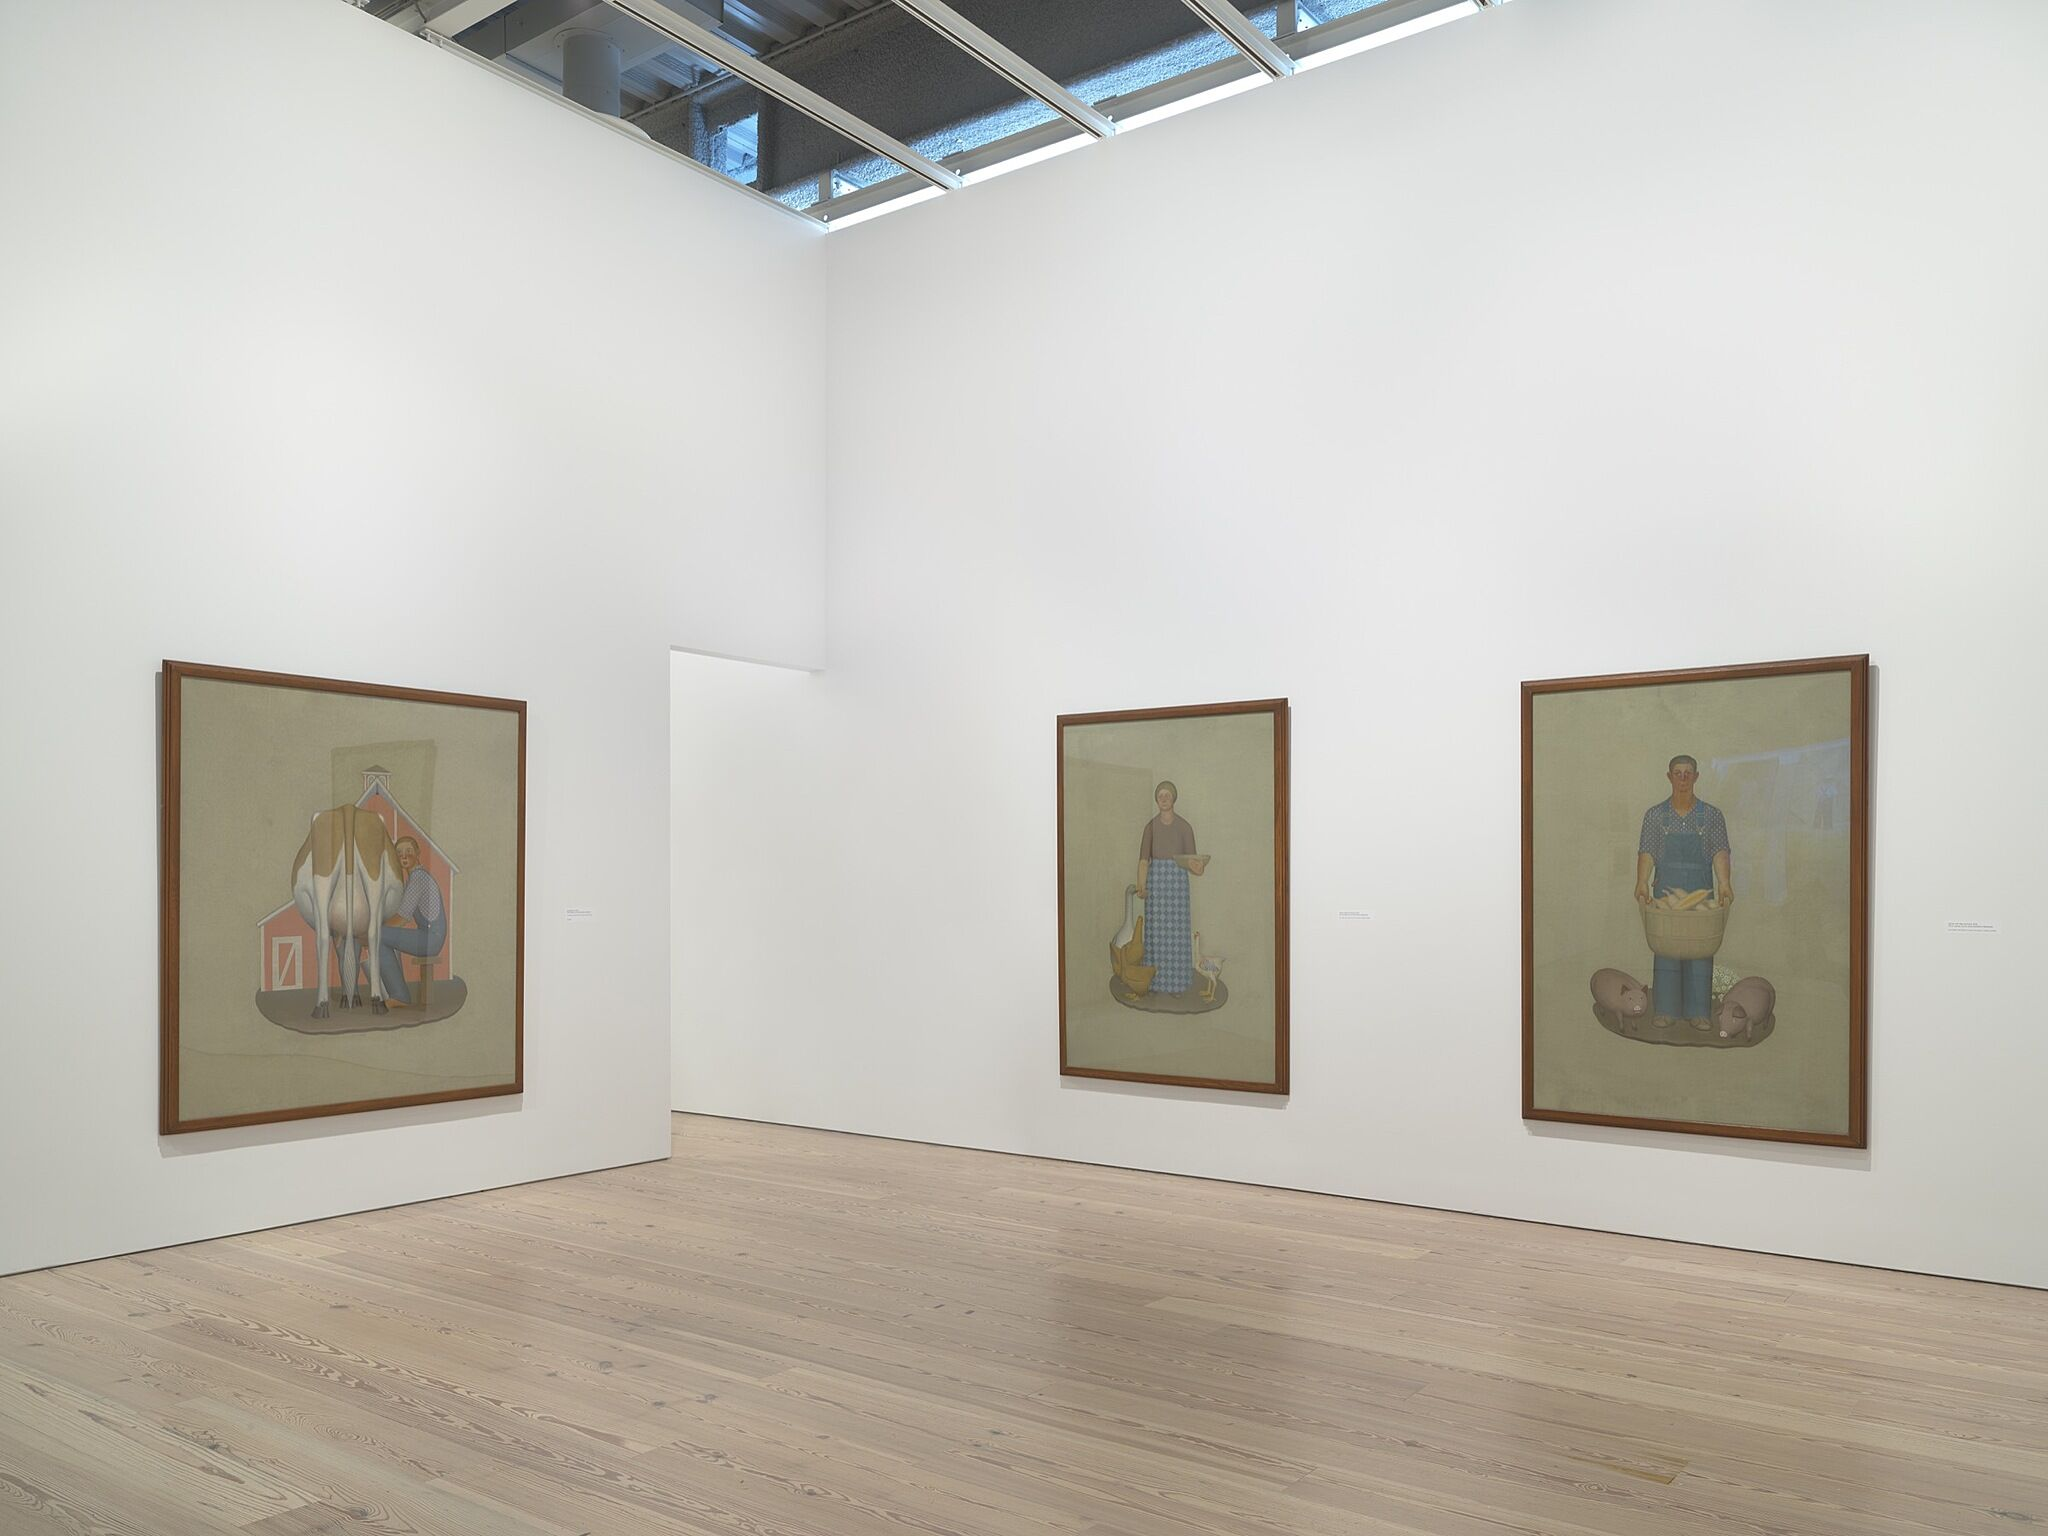 Three large paintings on white gallery walls.